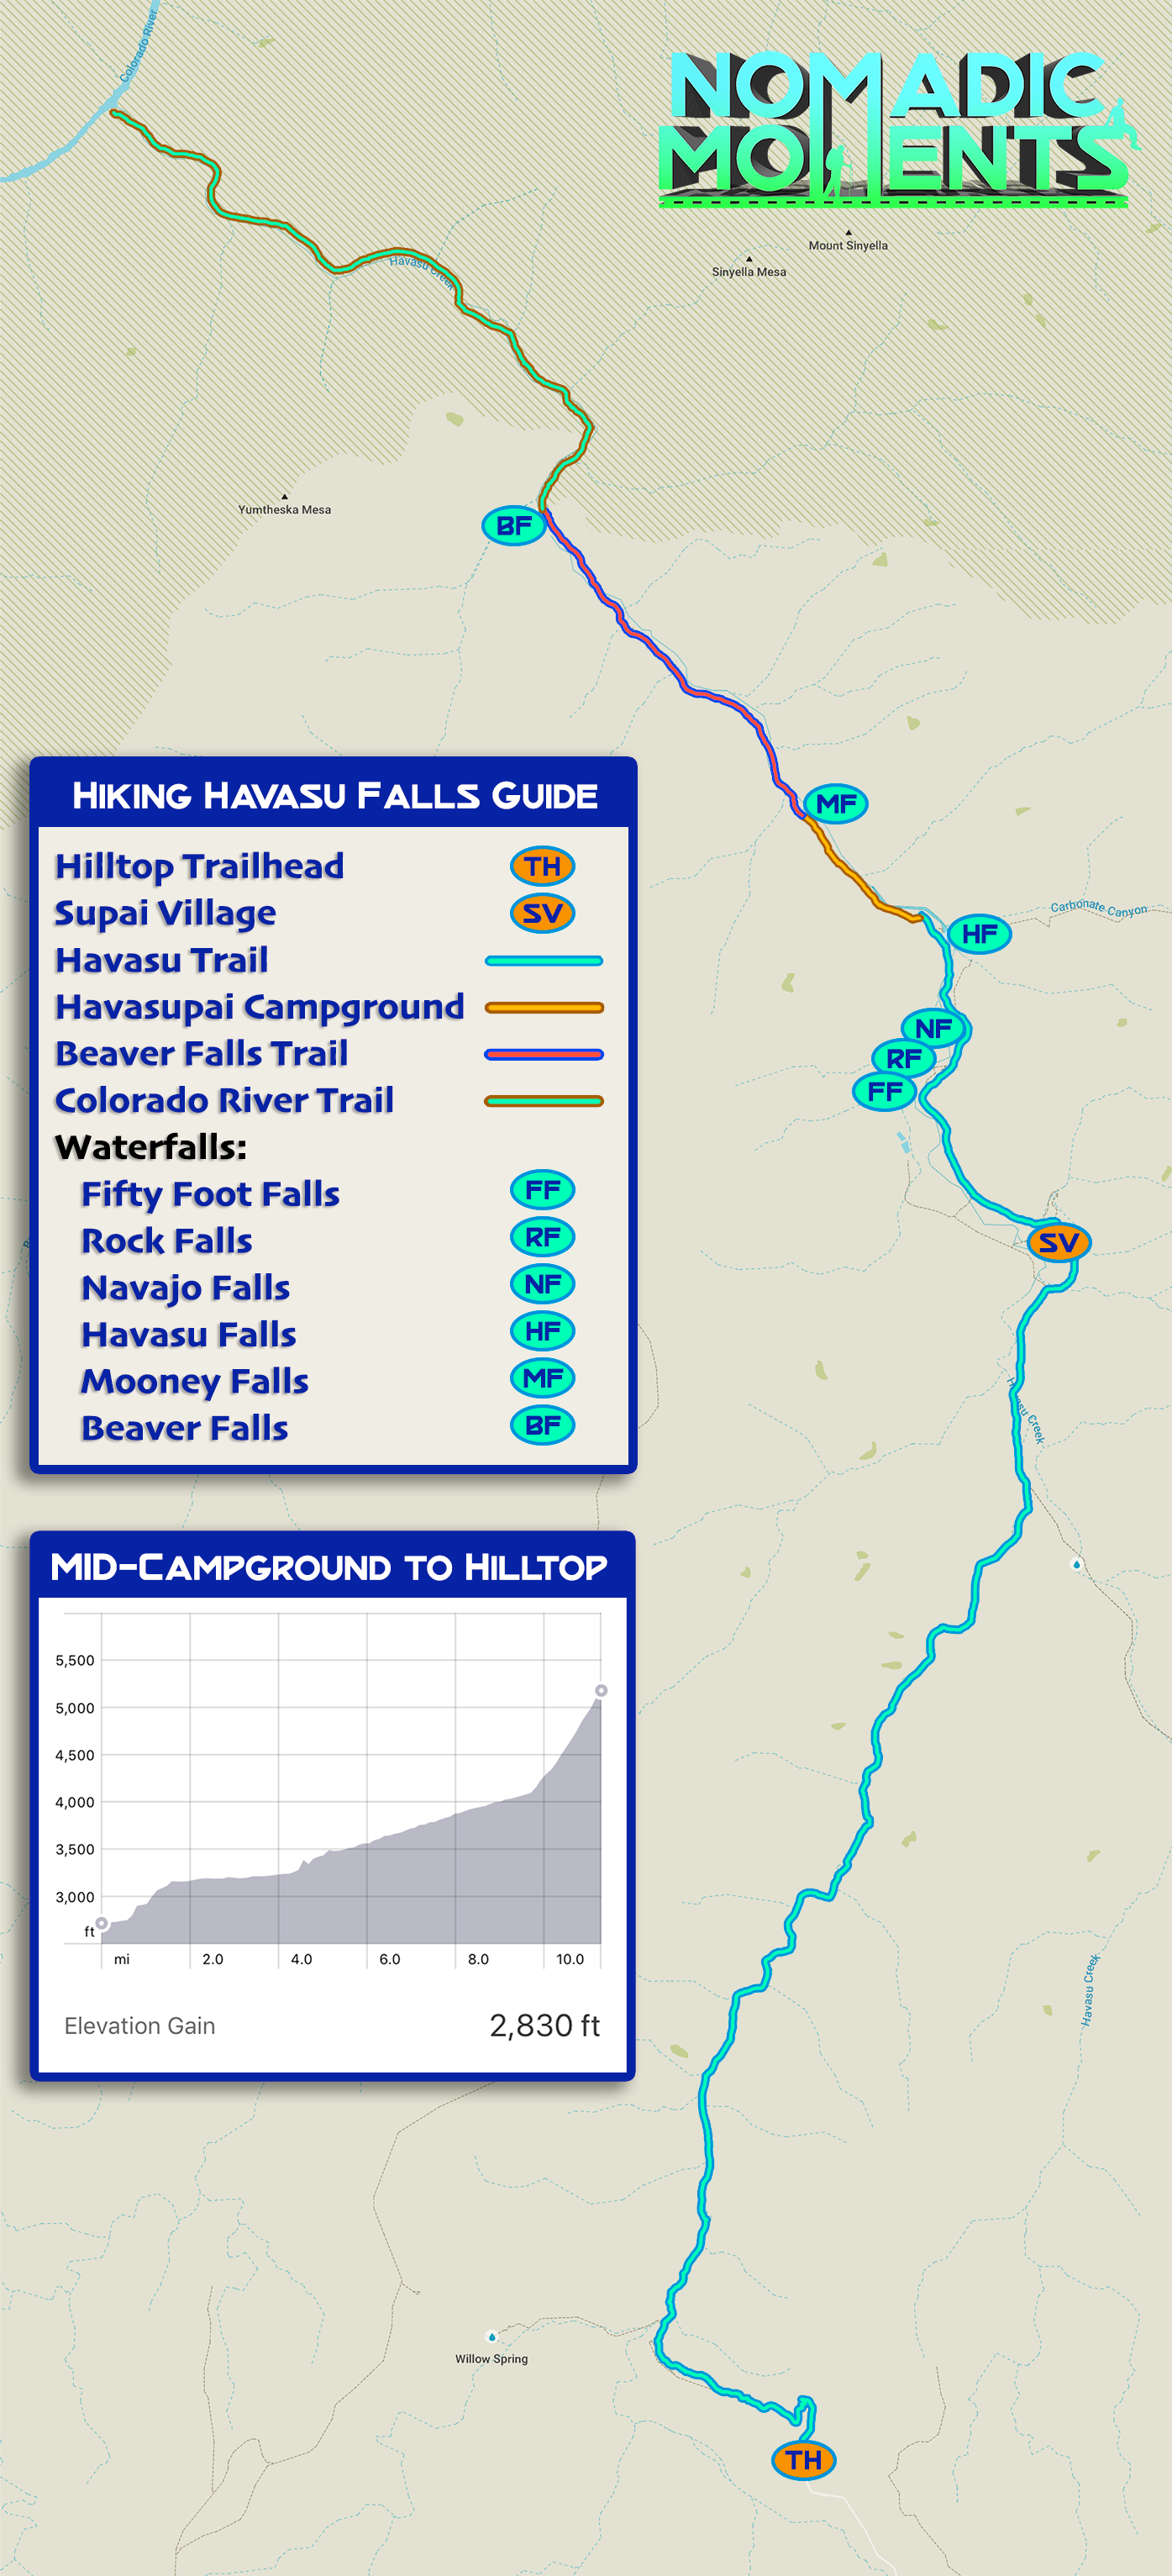 The Havasu Falls Guide 2019 - Nomadic Moments on map of meteor crater, map of shoshone falls, map of grand canyon region, map of utah, map of havasu falls, map of monument valley, map of mooney falls, map of canyon de chelly,